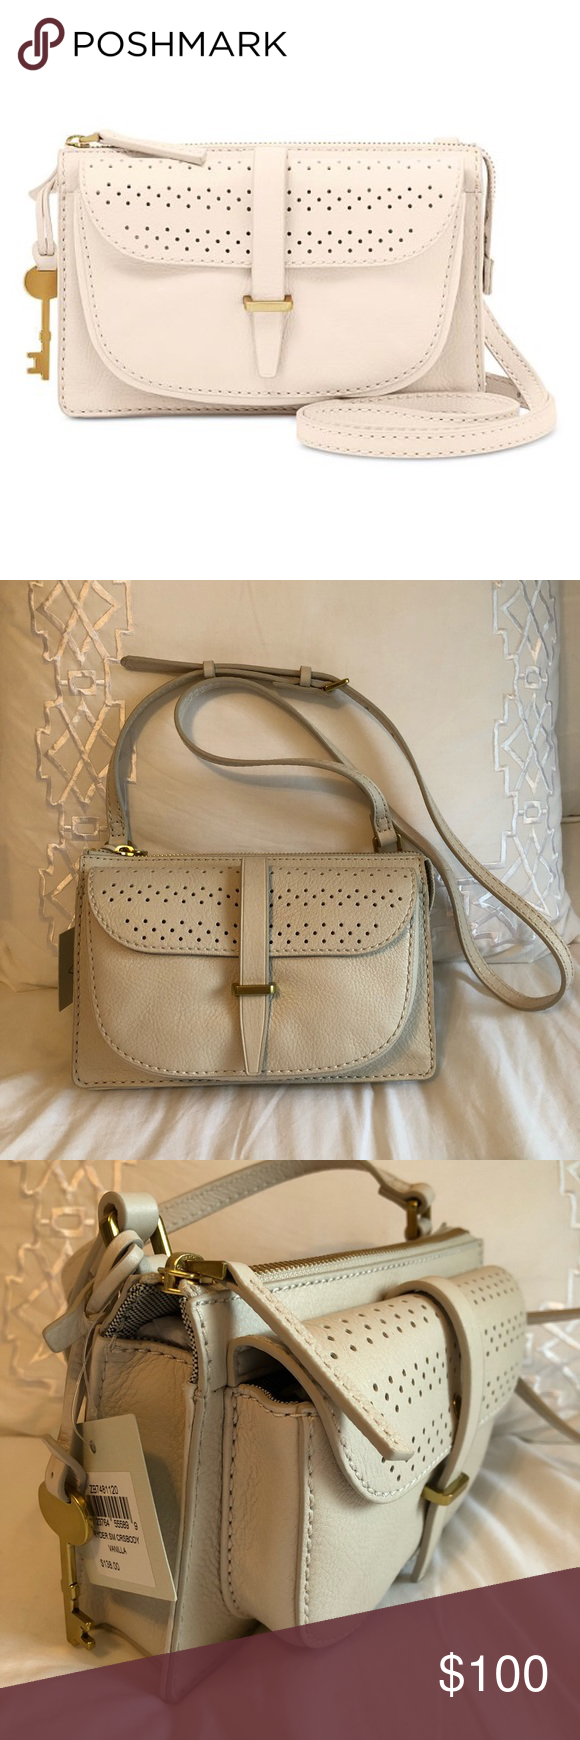 0be2626d0 {HOST PICK} Fossil Ryder Small Crossbody Bag Fossil Ryder Small Crossbody  Bag Color: